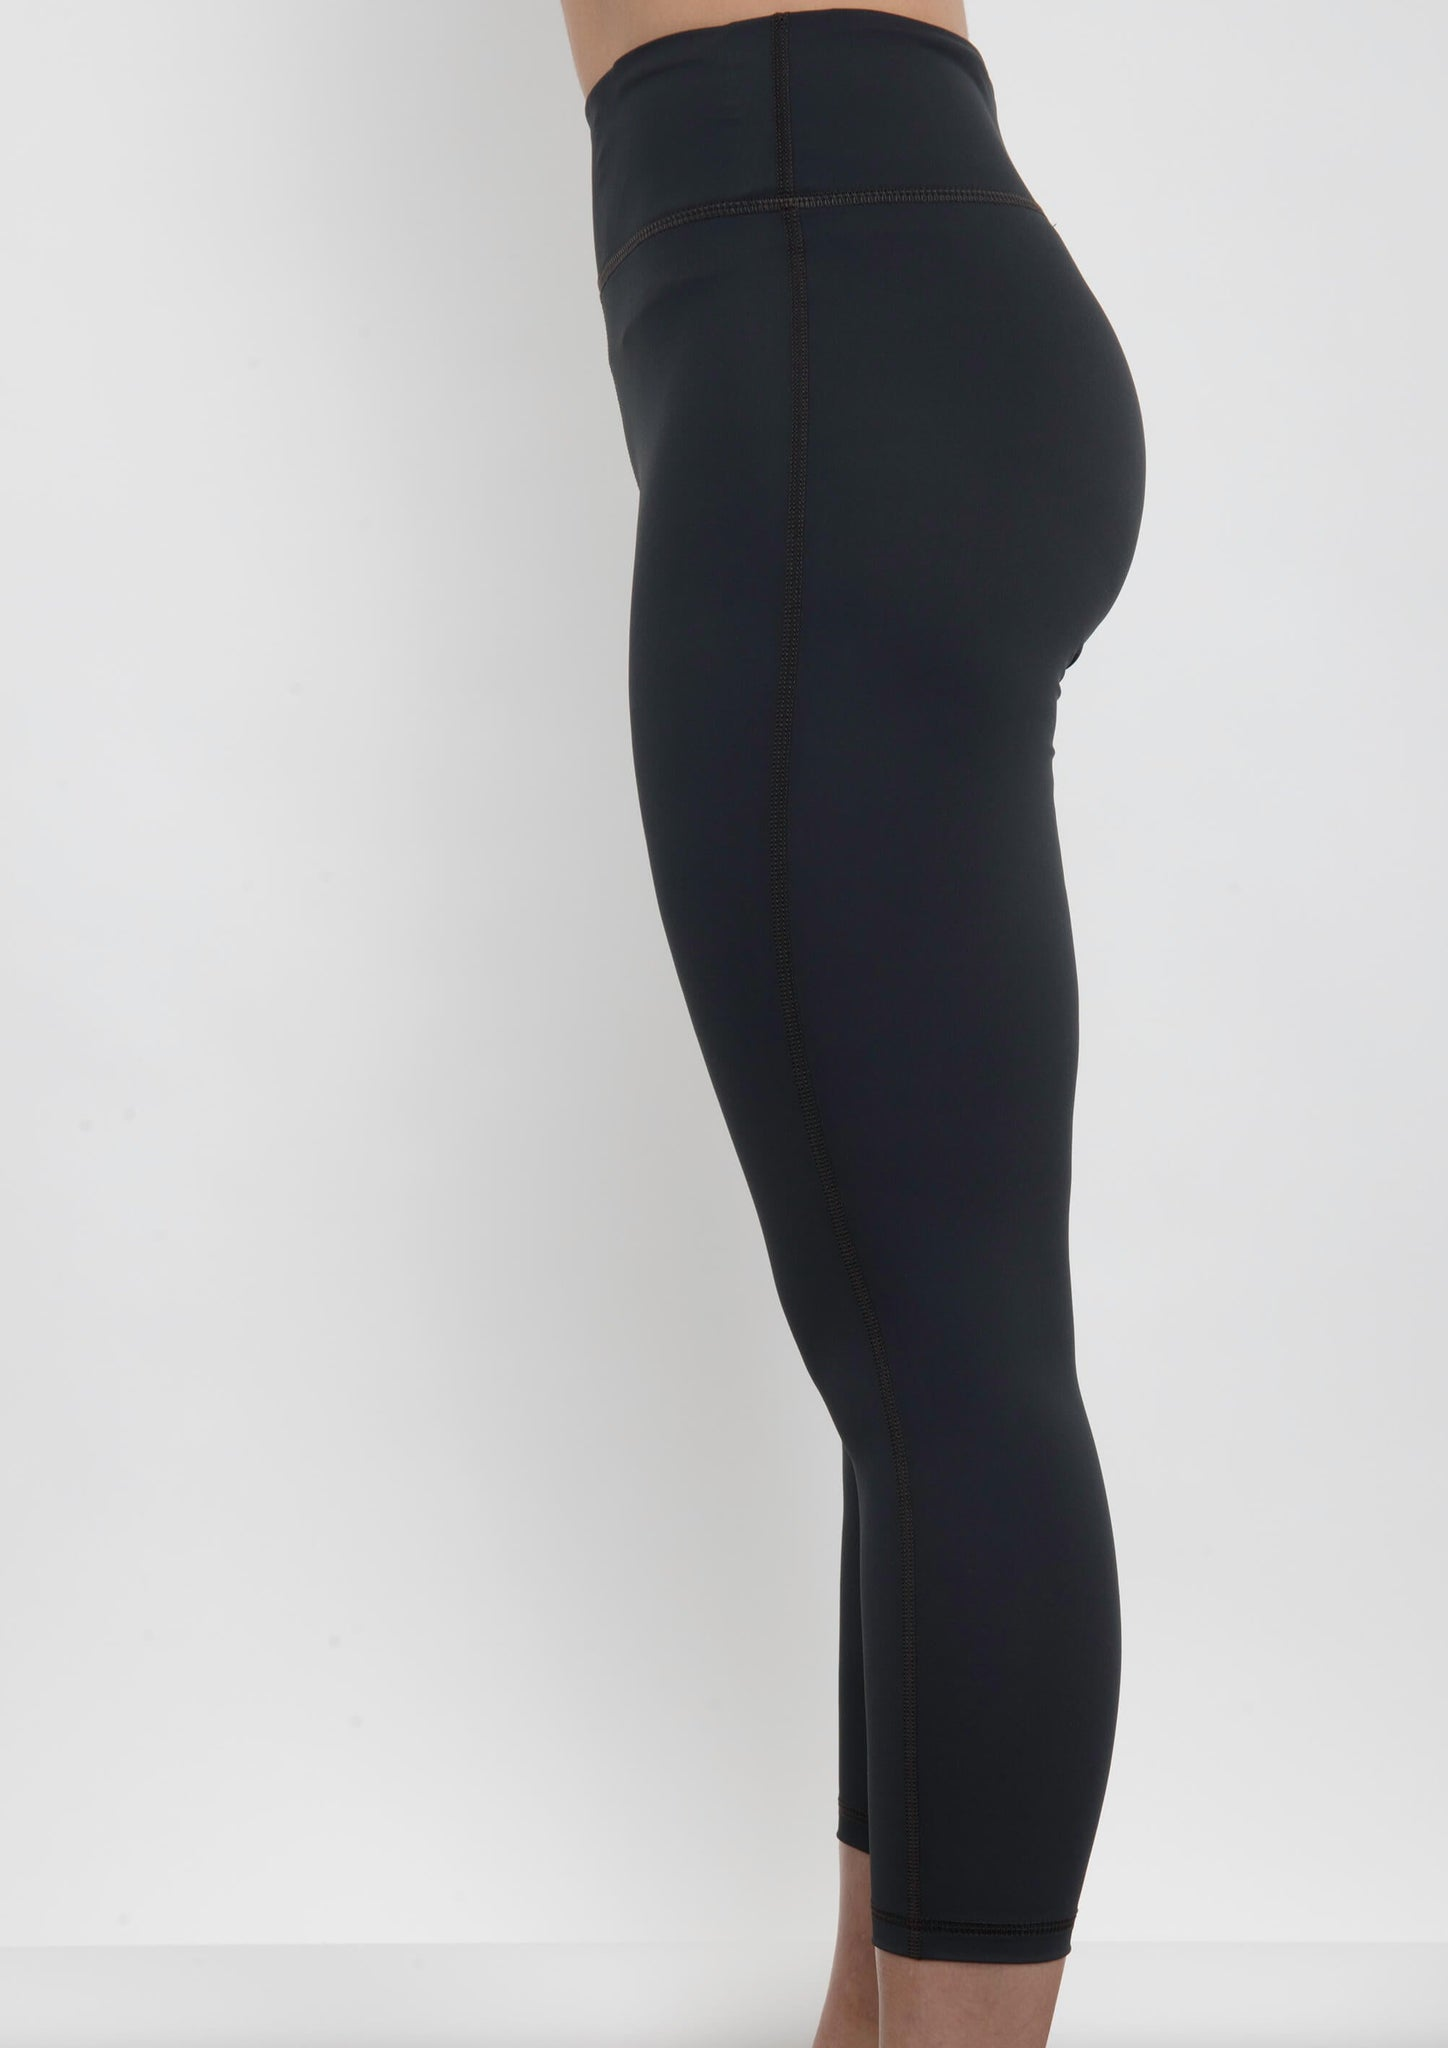 Grey Sculpt Crop Legging - Haven Collective